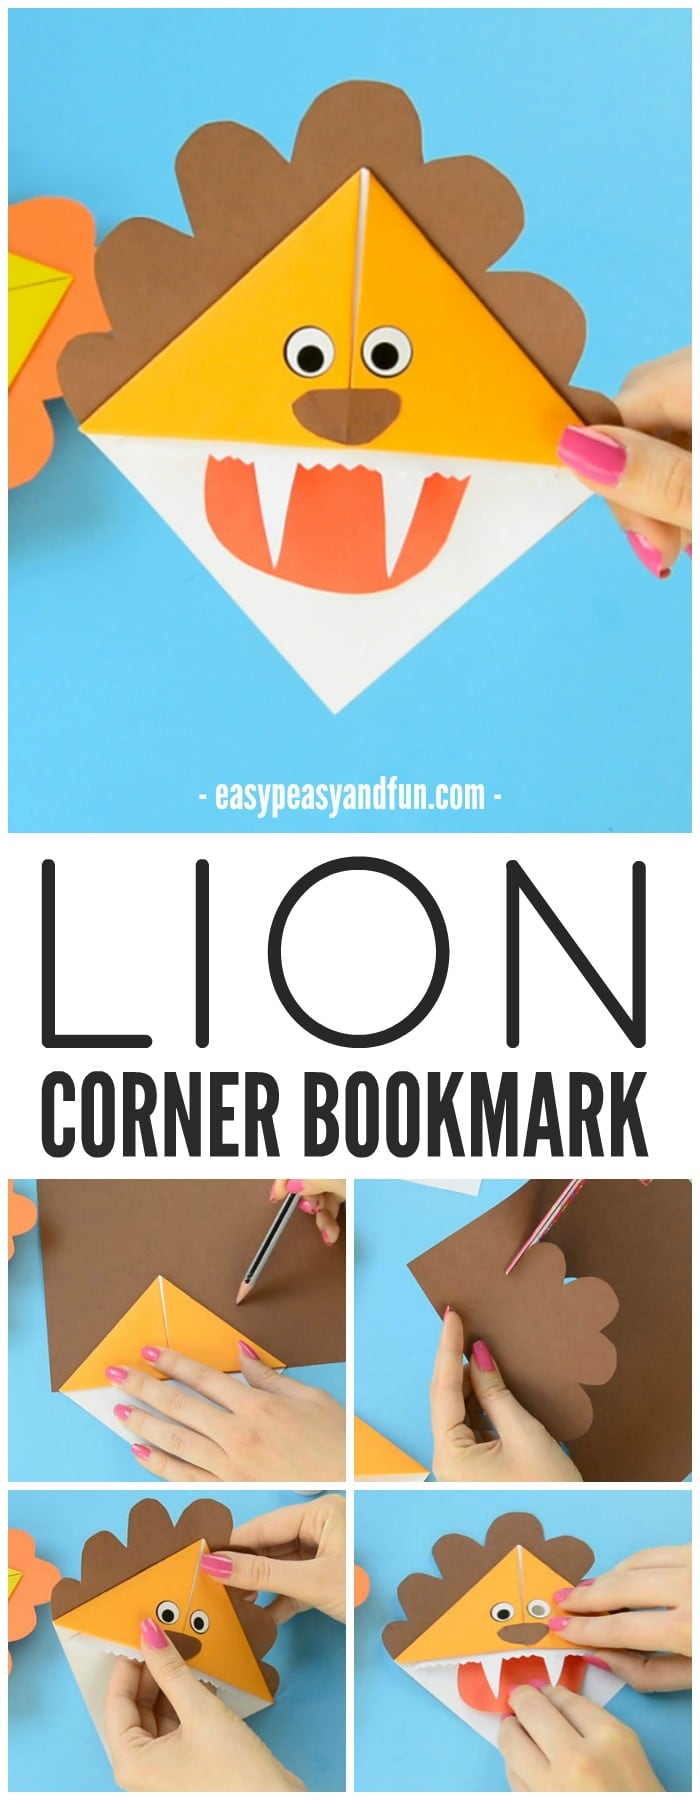 Lion Origami Easy Lion Corner Bookmarks Step Step Tutorial Easy Peasy And Fun